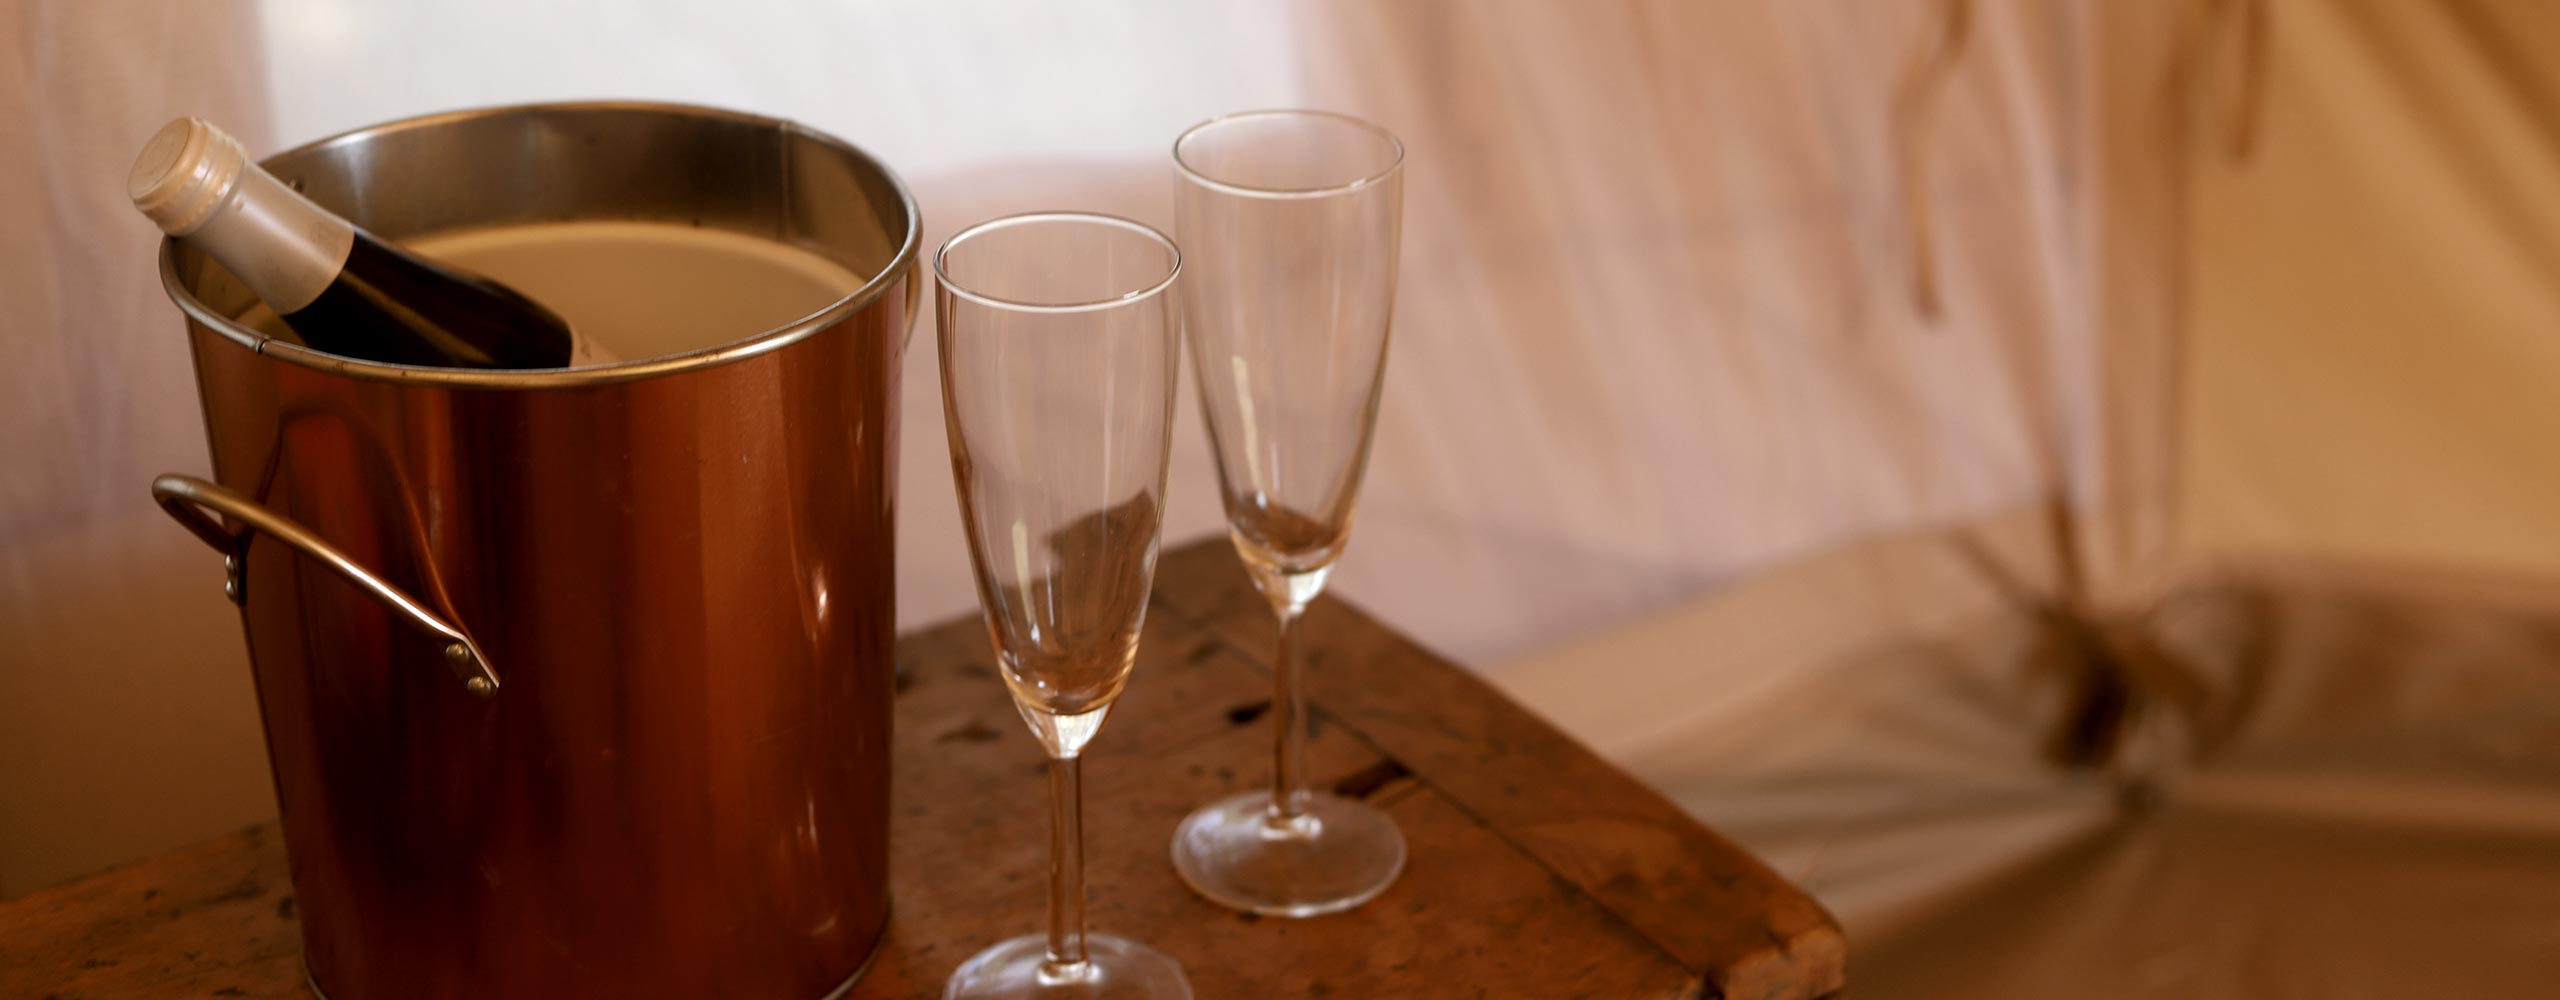 Newlyweds Suite — Sparkling wine from Gippsland, Victoria in luxury glamping tent